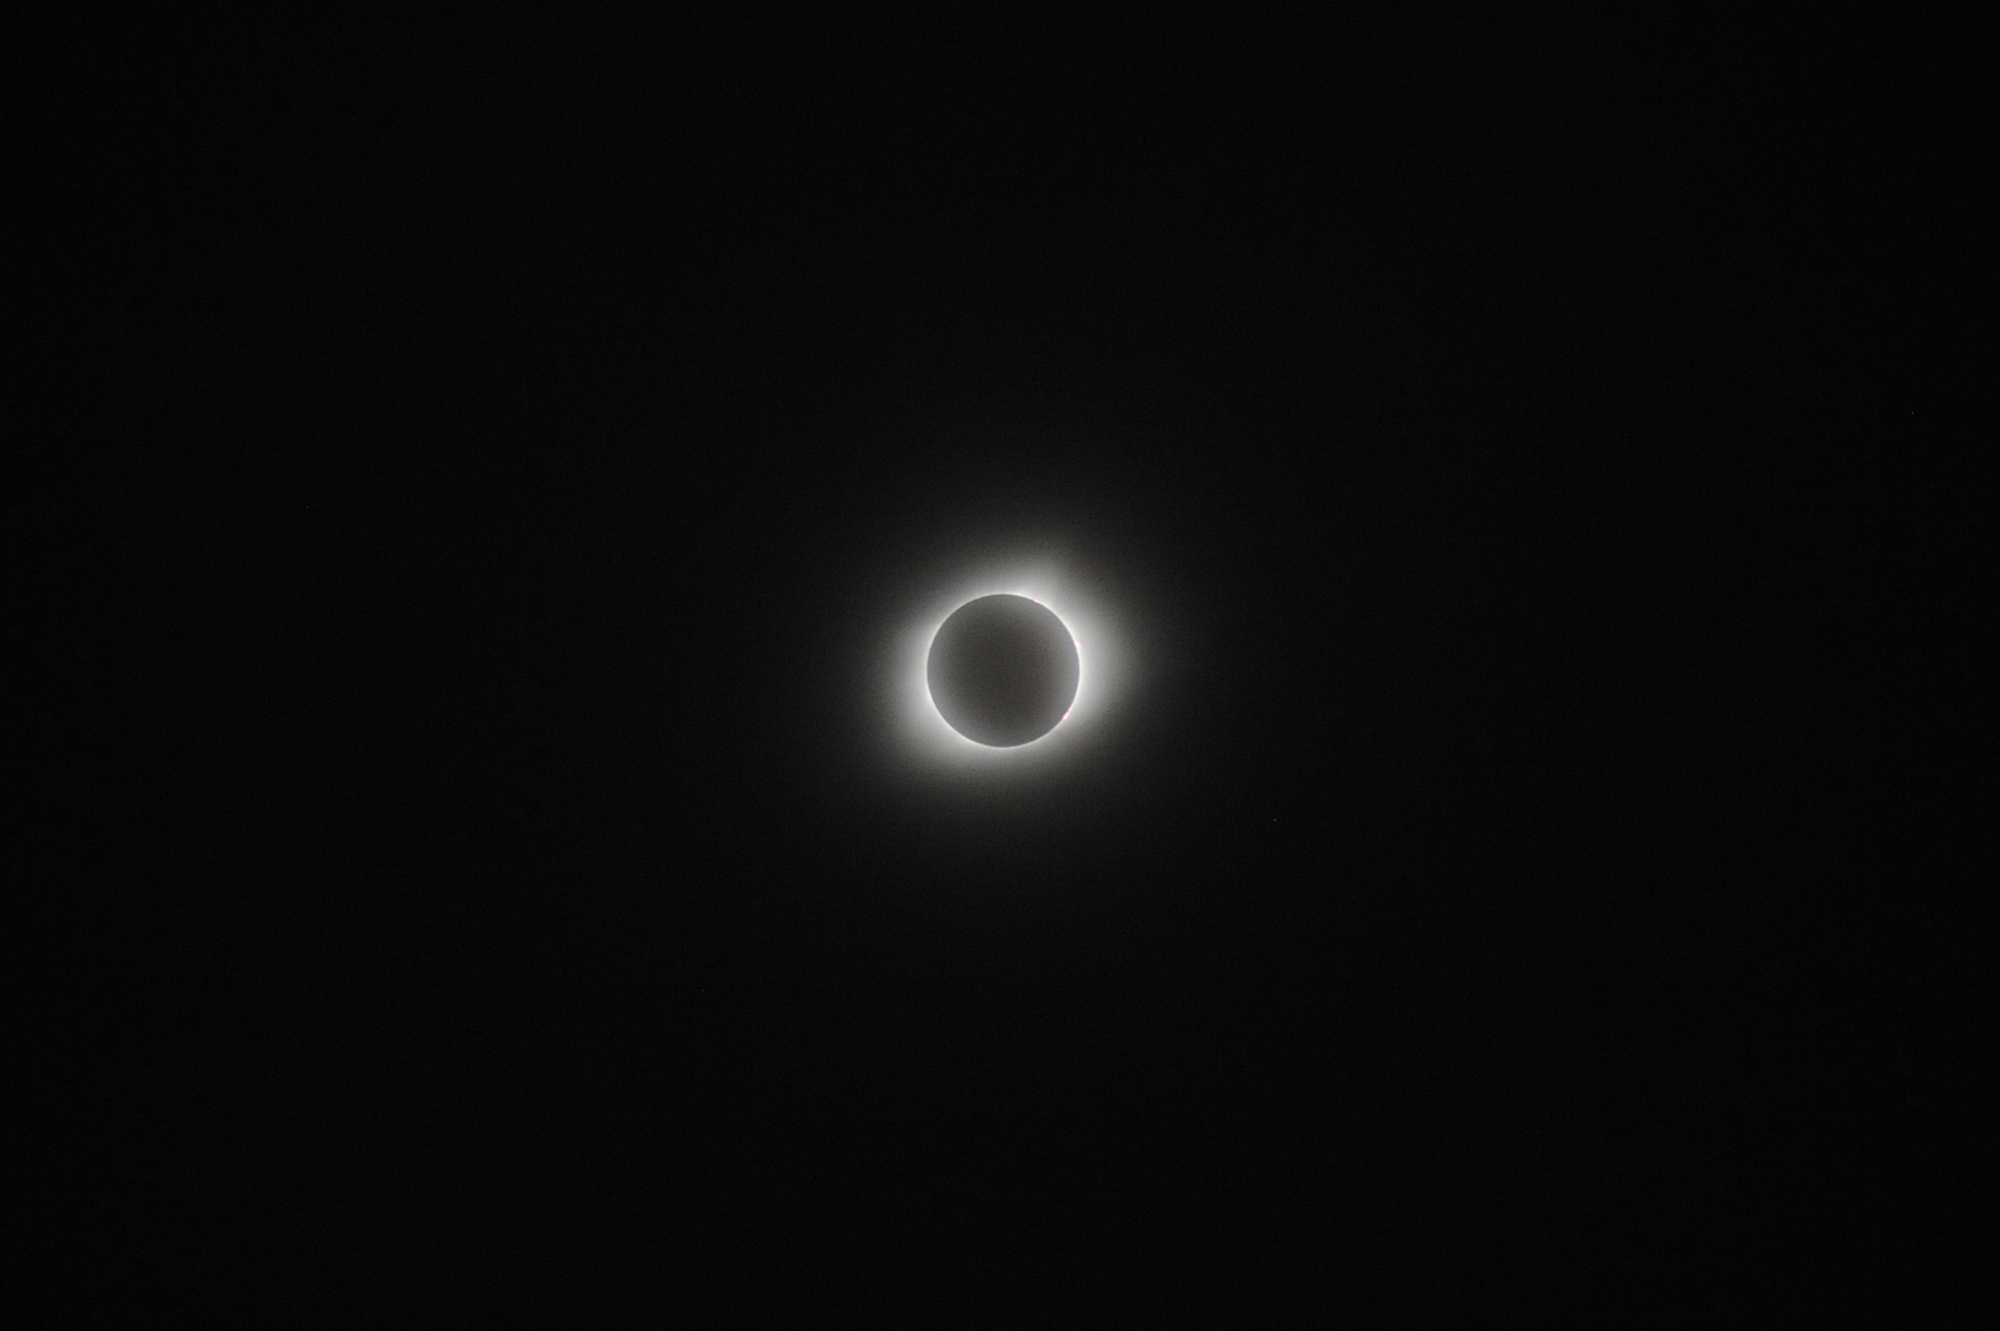 """The moon is perfectly aligned with the sun as totality of the eclipse is reached at Oak Spirit Sanctuary in Wooldridge, Missouri on Monday, August 21, 2017. The clouds parted a few minutes before totality, allowing the spectacle to be viewed, and then clouds covered the sun directly after. """"If that wasn't magic, I don't know what is,"""" said pagan Samantha Walker of Hannibal, Missouri."""